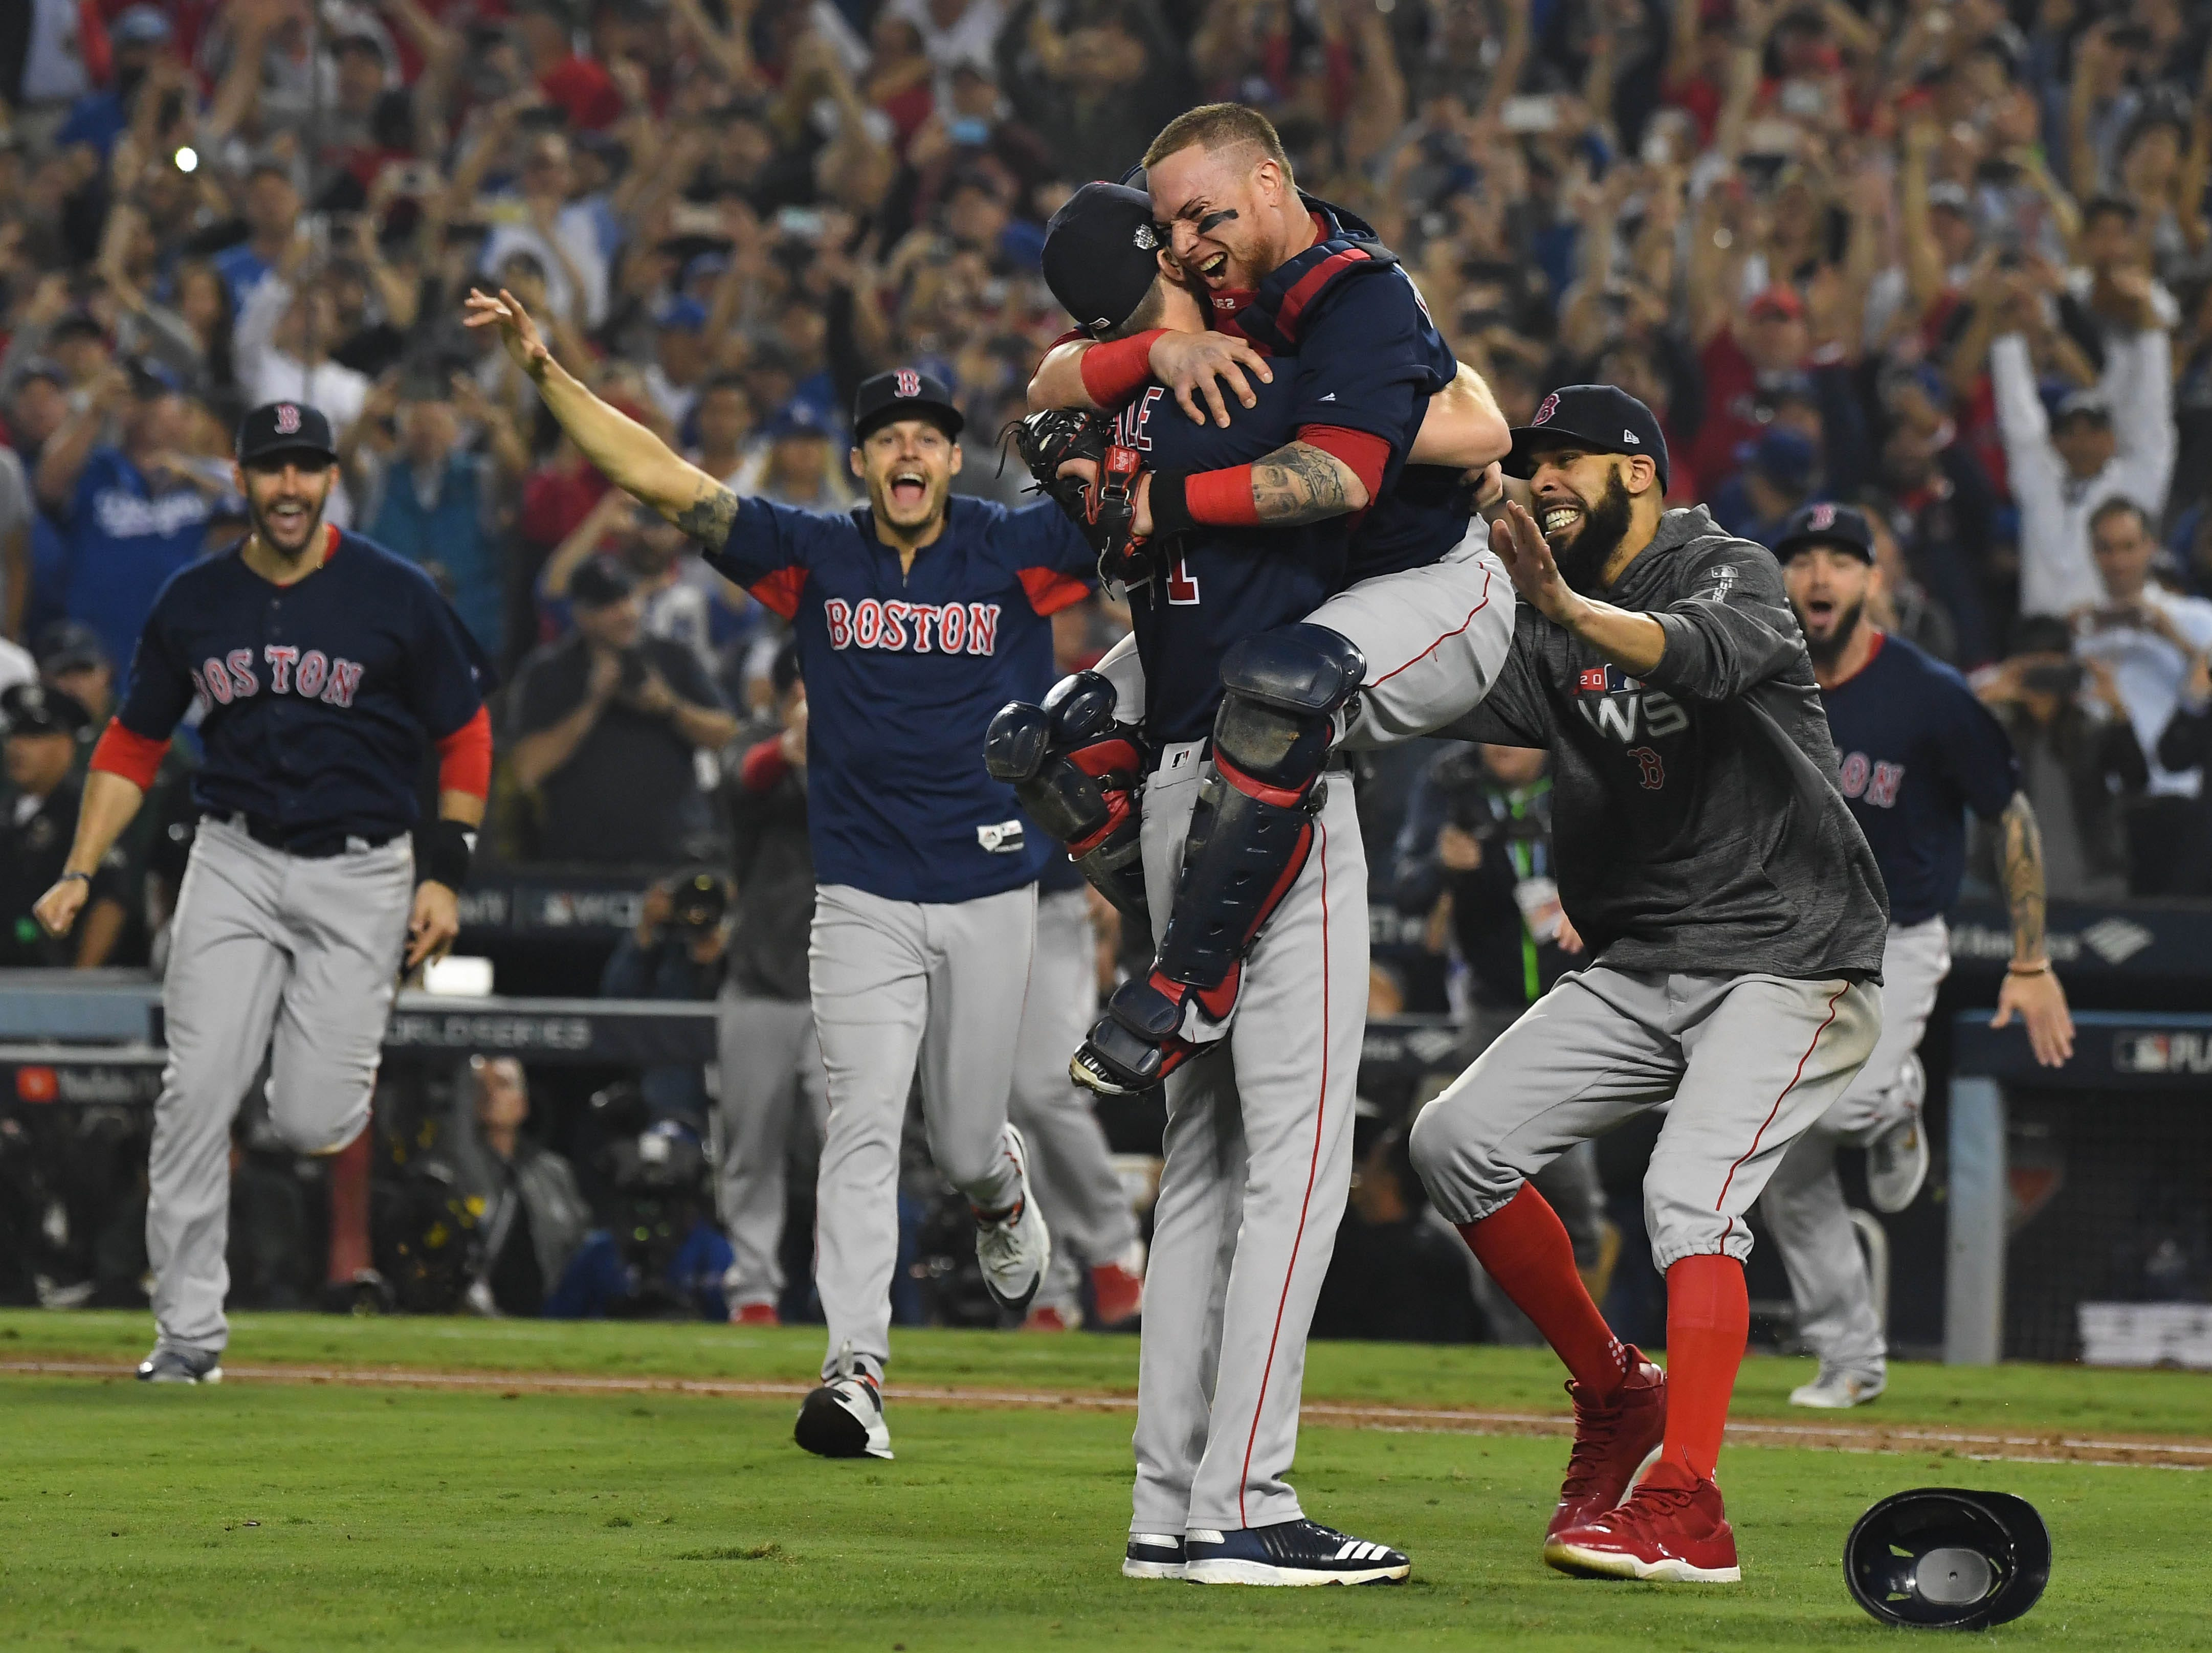 Boston Red Sox pitcher Chris Sale (left) celebrates with teammates including catcher Christian Vazquez and pitcher David Price (right) after defeating the Los Angeles Dodgers in game five of the 2018 World Series at Dodger Stadium on Oct. 28, 2018.